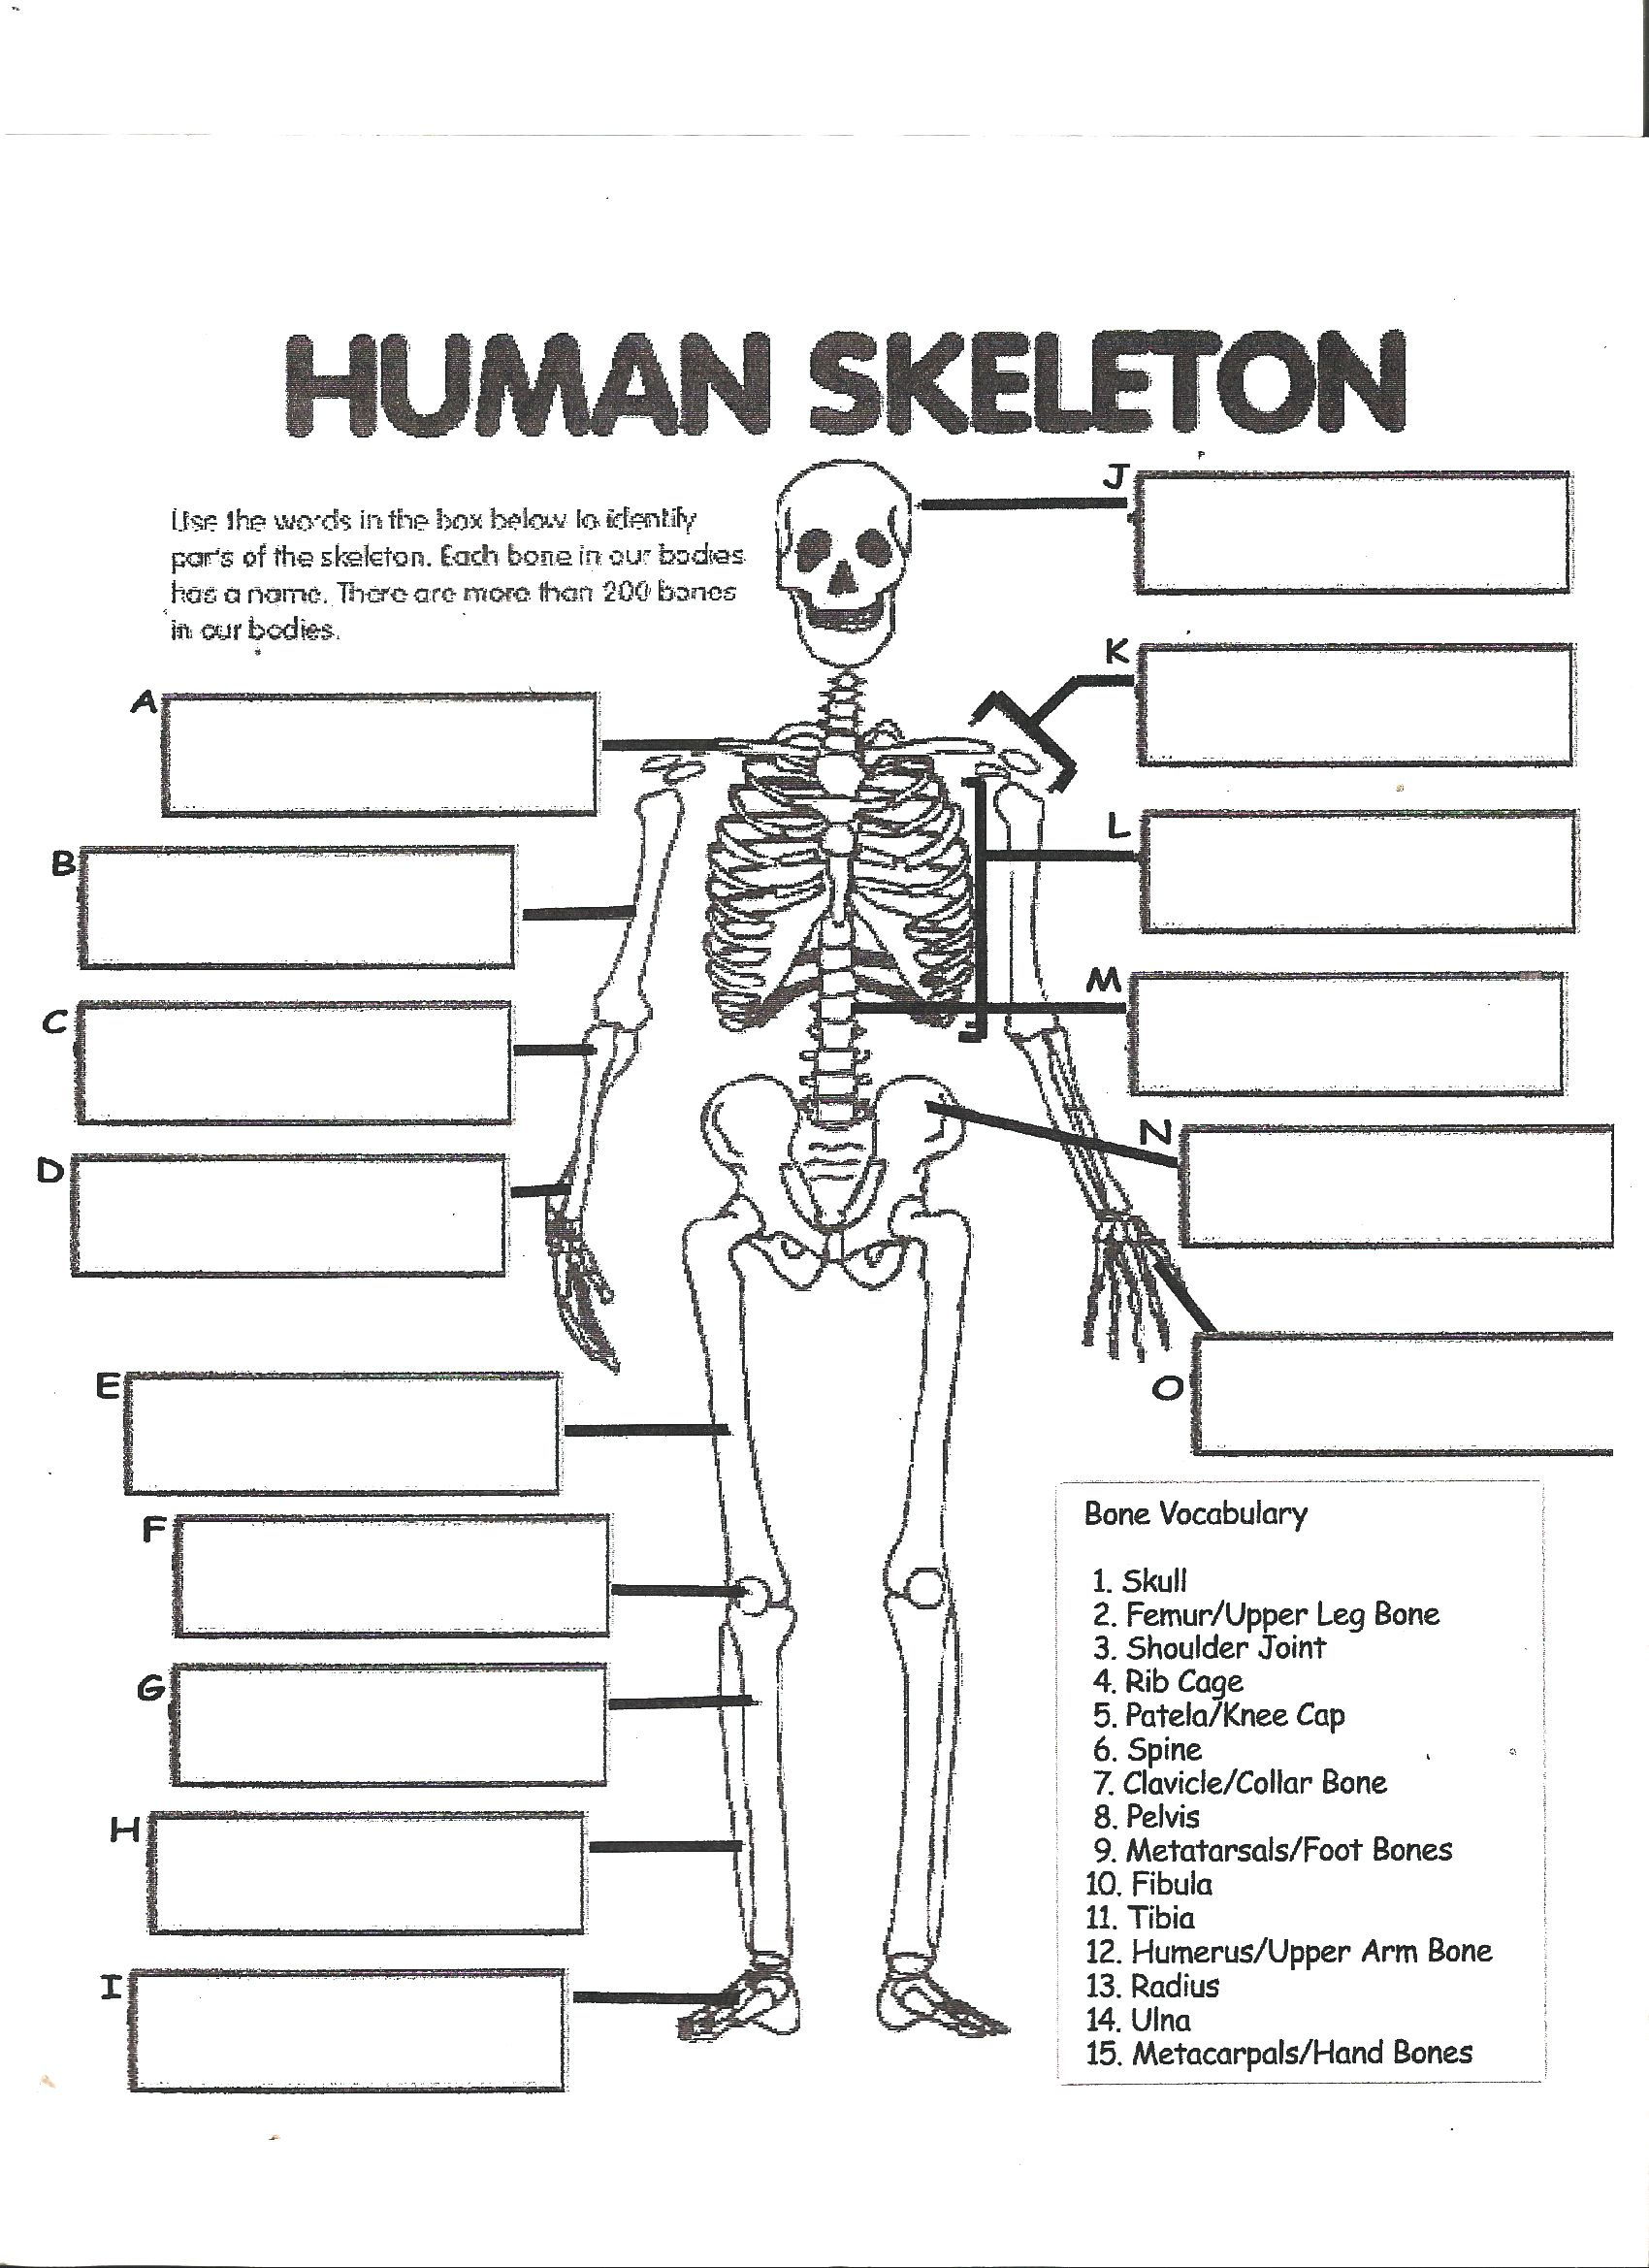 Digestive System Labeling Worksheet Answers Human skeleton – Digestive System Diagram Worksheet